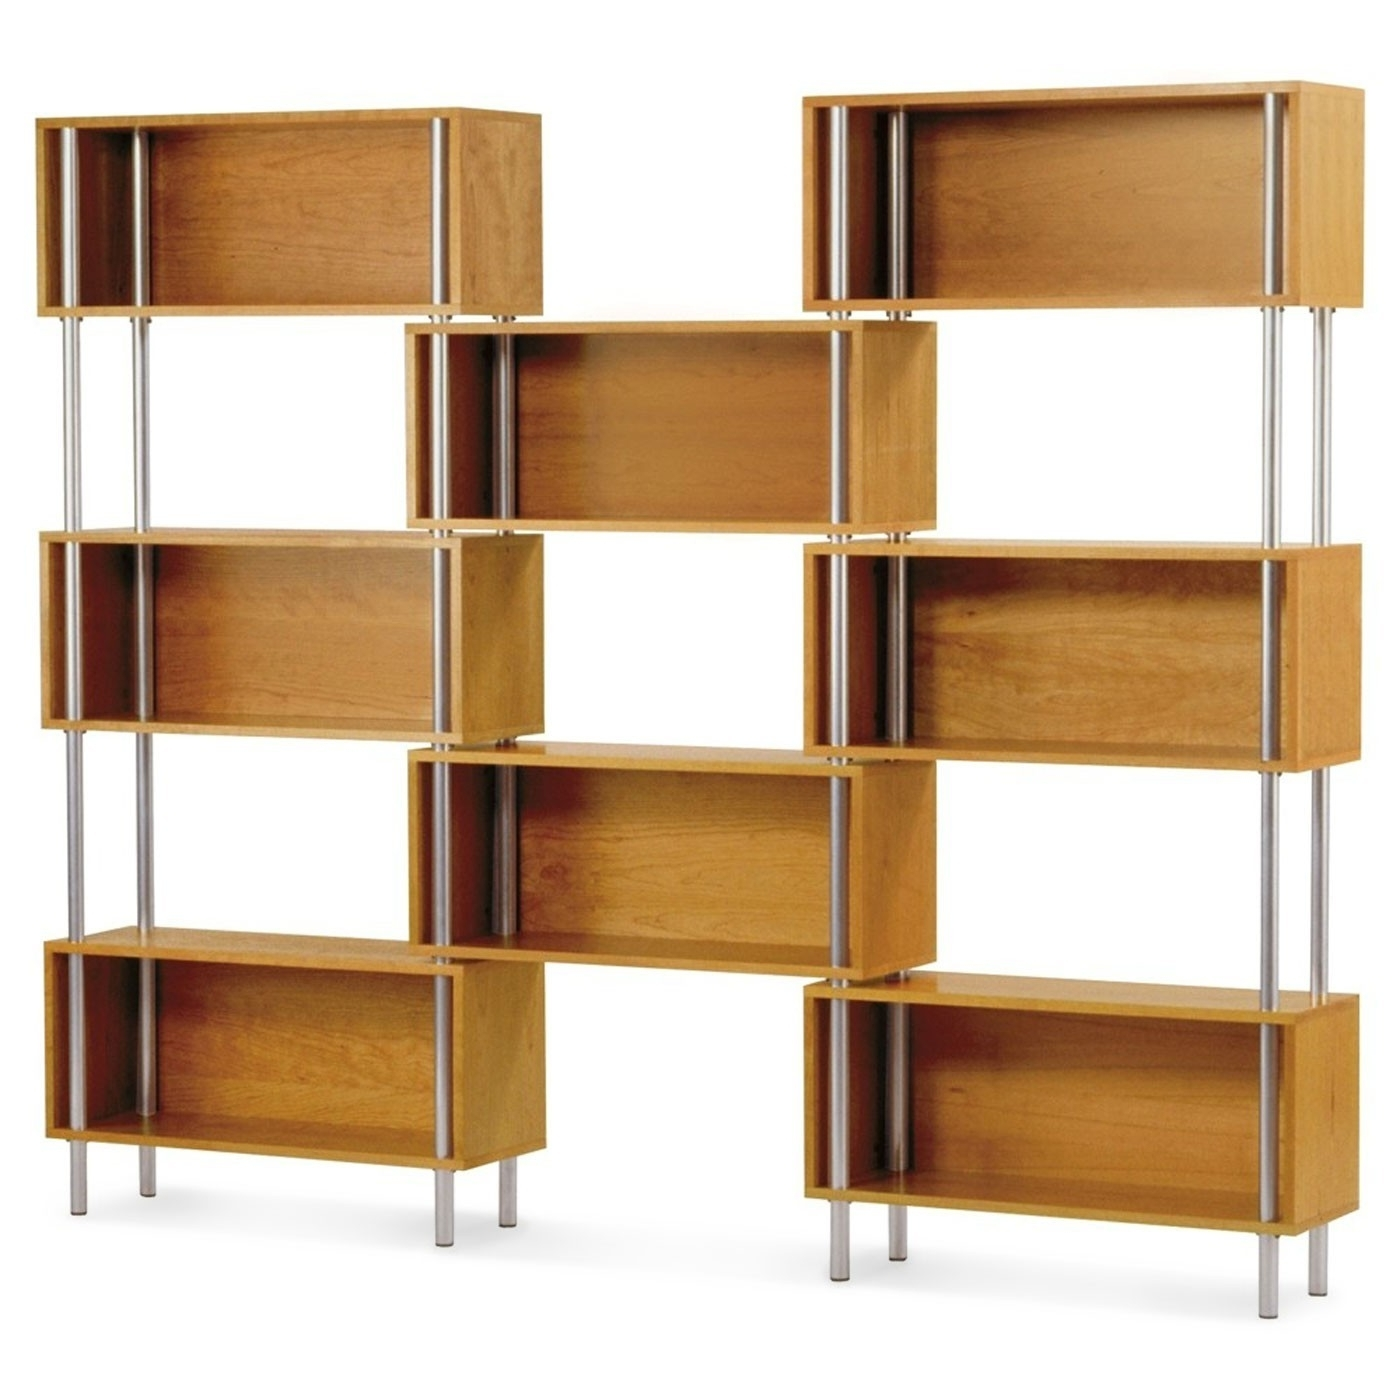 Free Standing Shelving Units Wood Pertaining To Favorite Fascinating Solid Oak Wood Shelving Unit With Glass Shelf (View 5 of 15)